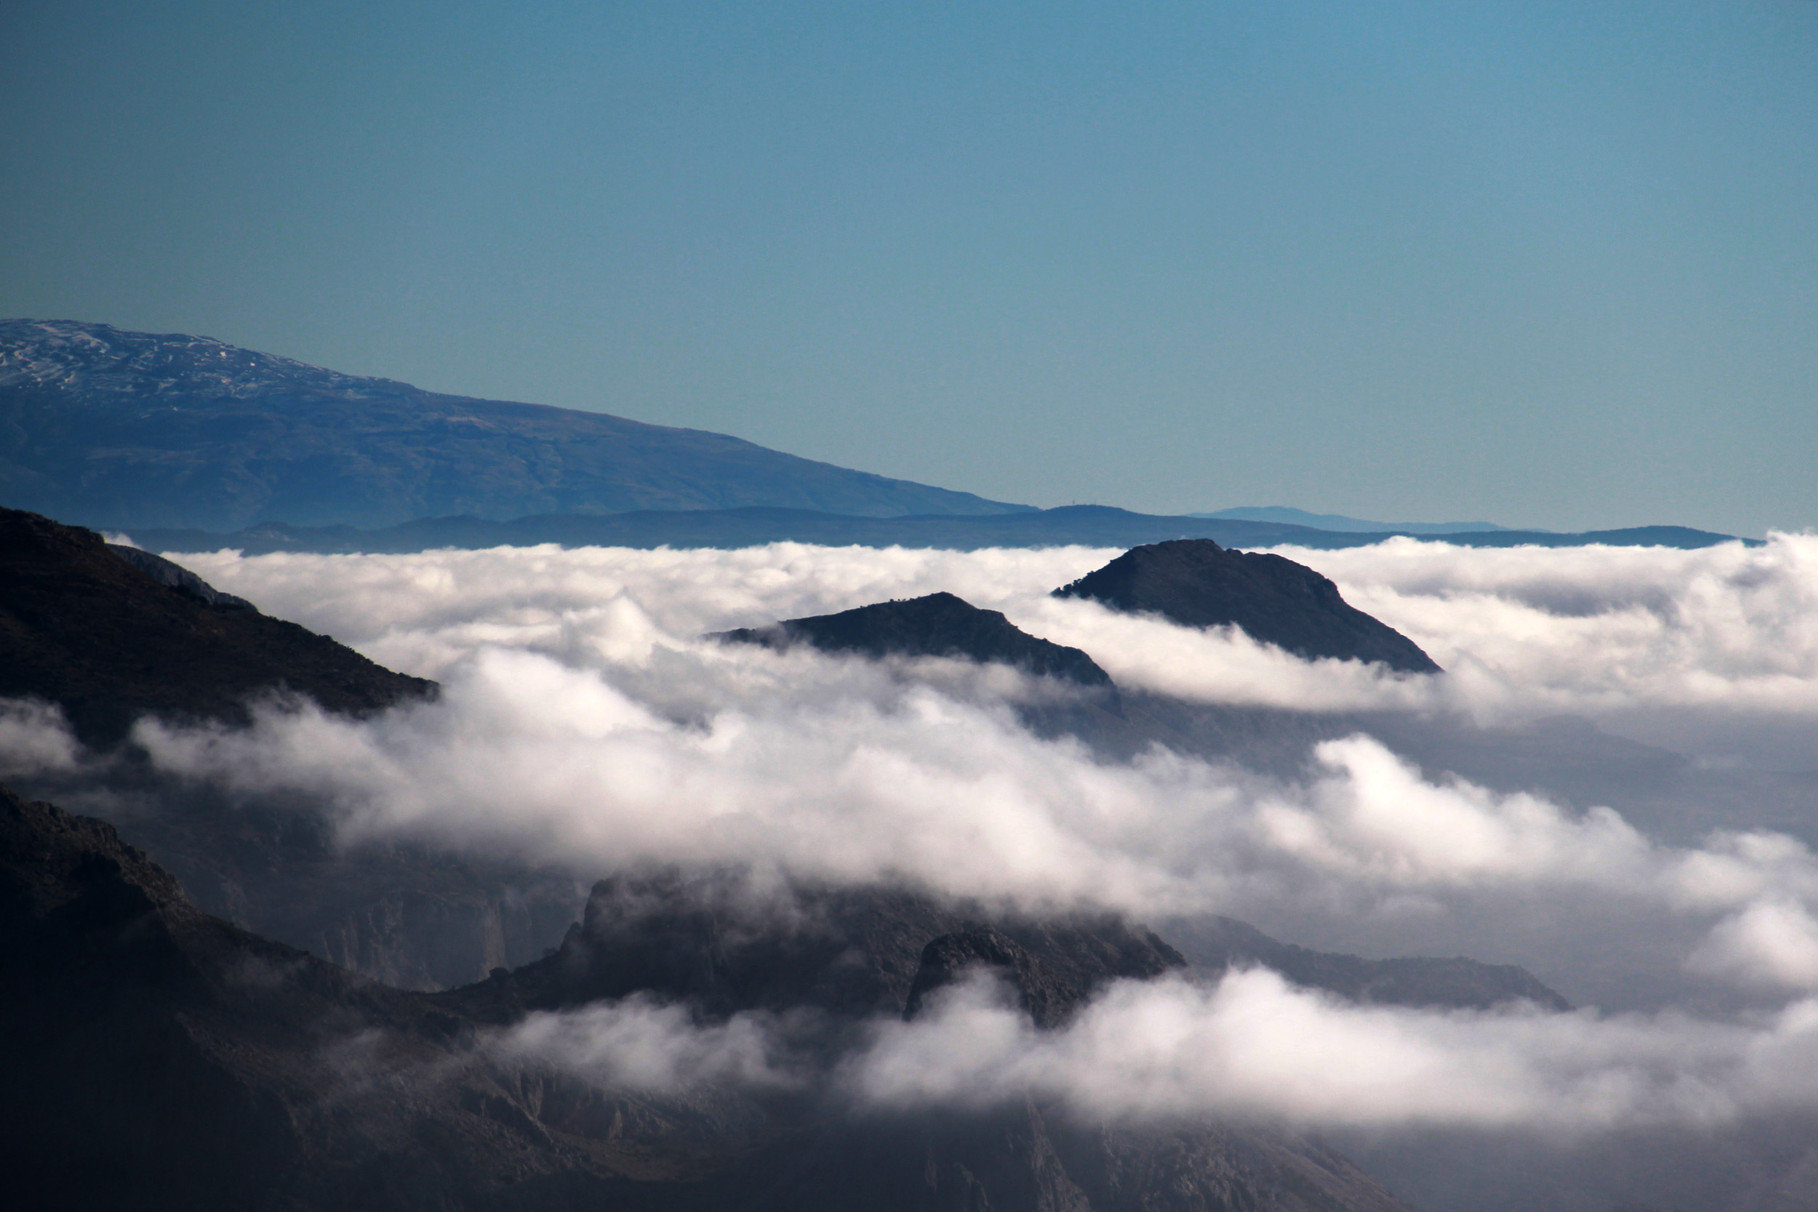 """Just above the Clouds"" - Sierra de Malaga - MC00003"